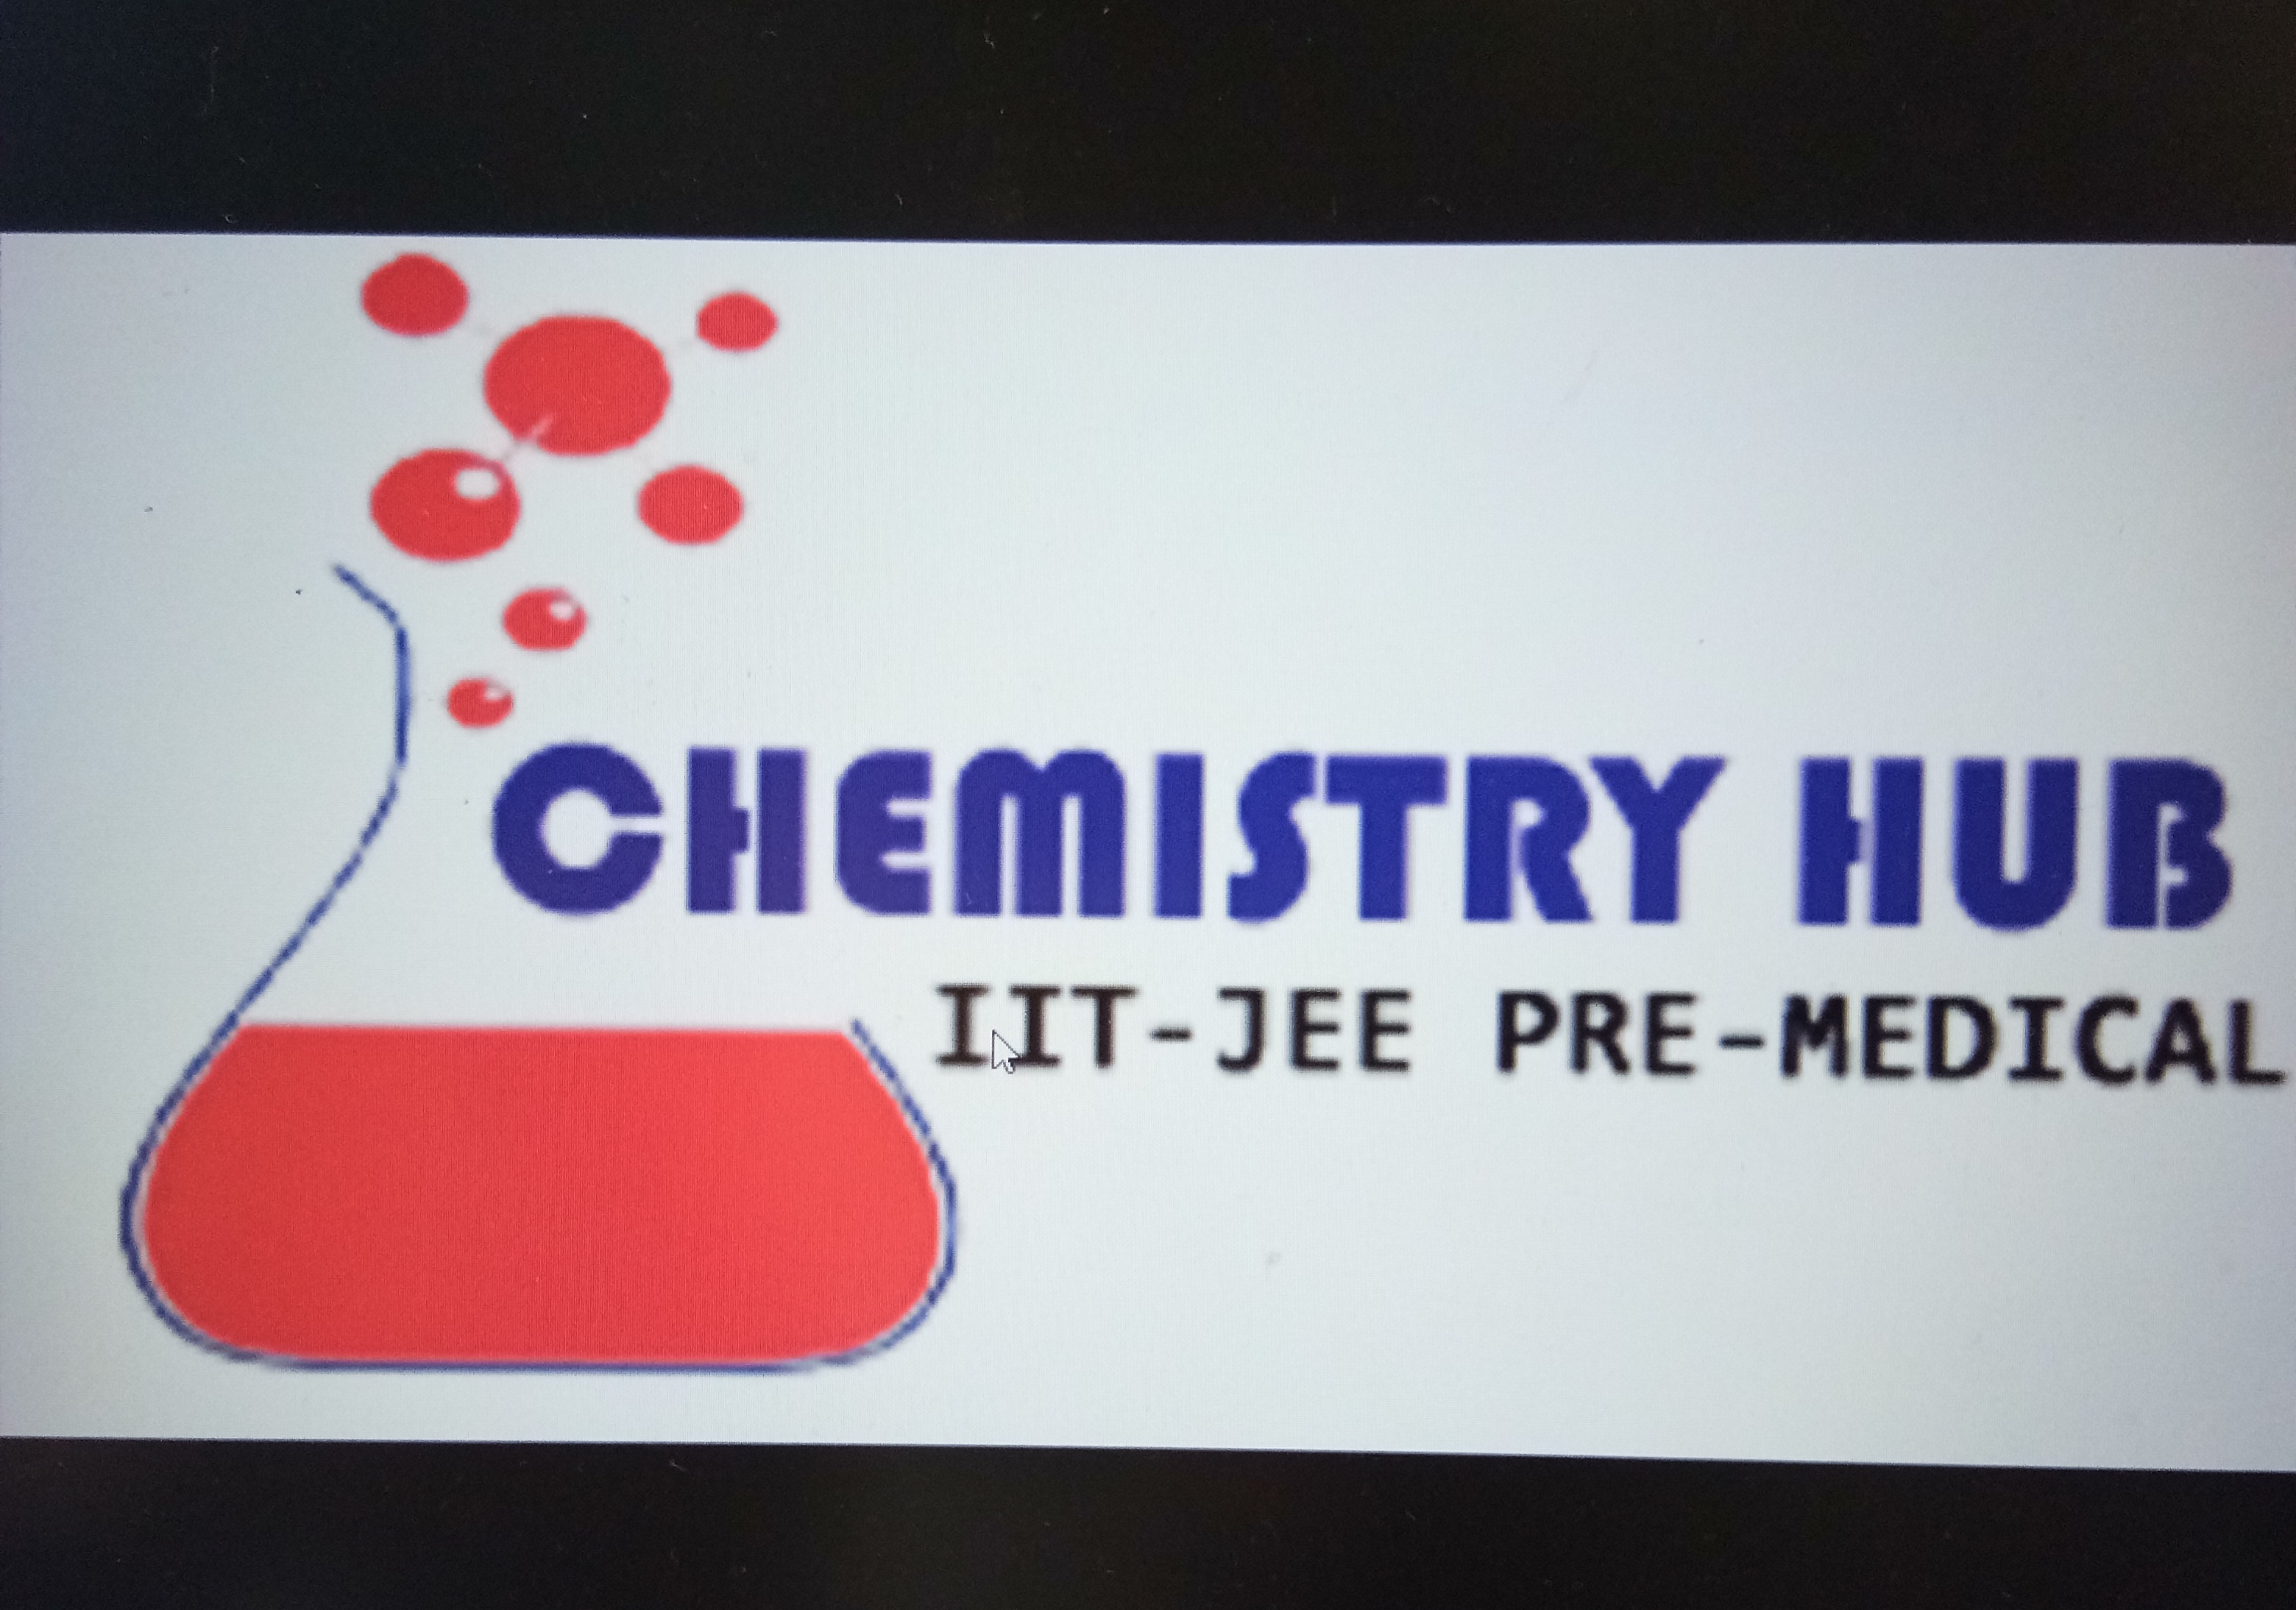 Logo of Chemistry Hub in Kota